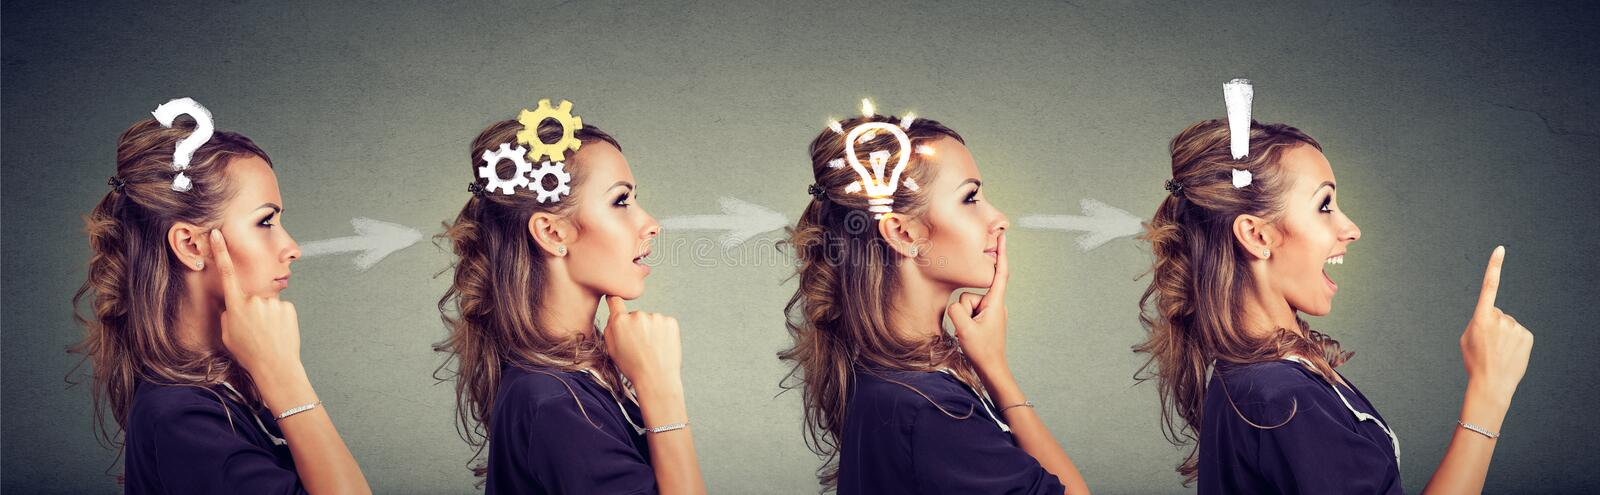 Sequence of a woman thoughtful, thinking, finding solution with gear mechanism, question, exclamation, lightbulb symbols. royalty free stock images